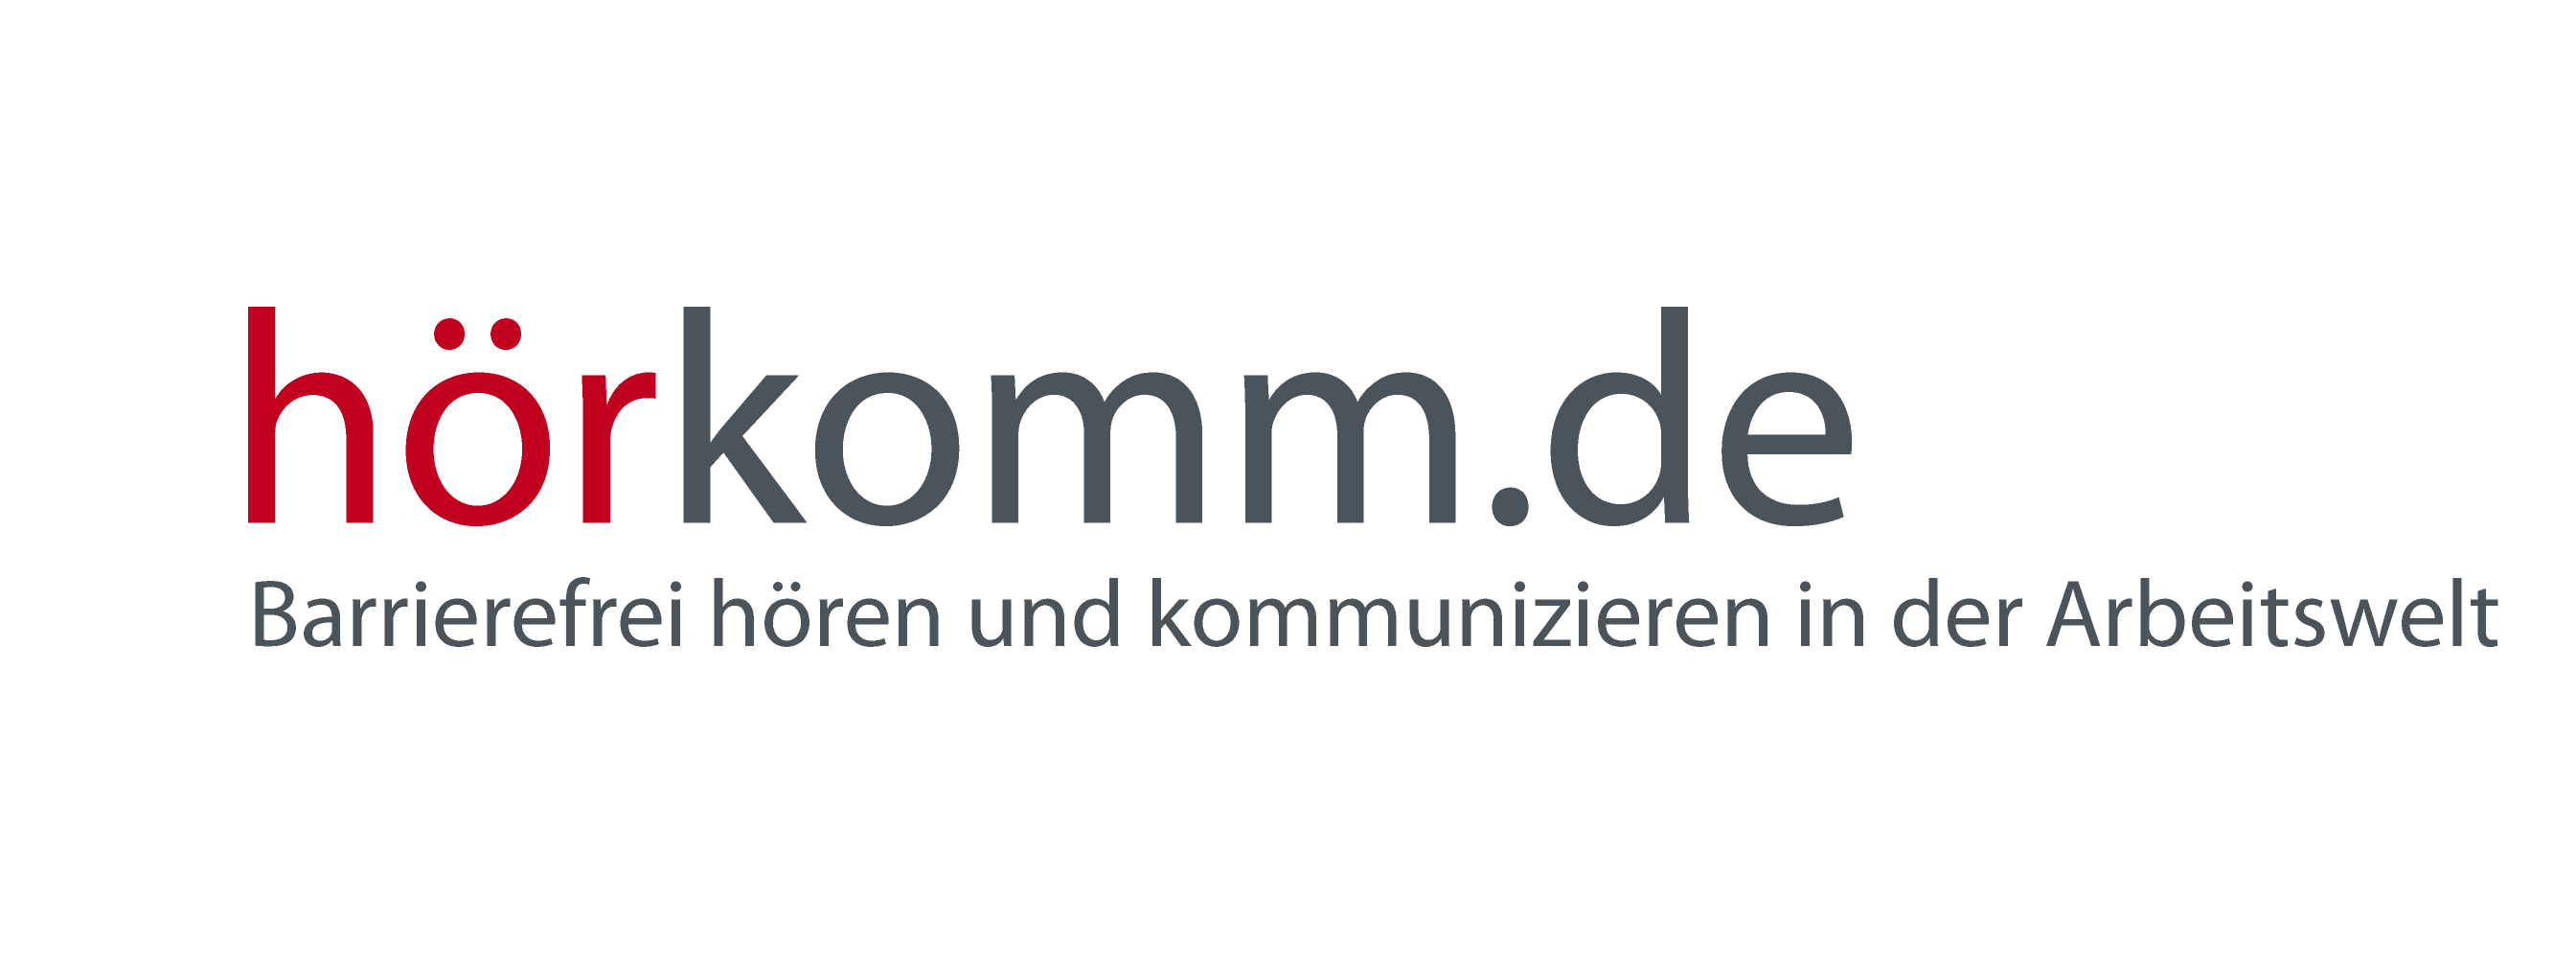 neues Fenster: http://www.hoerkomm.de/start.html